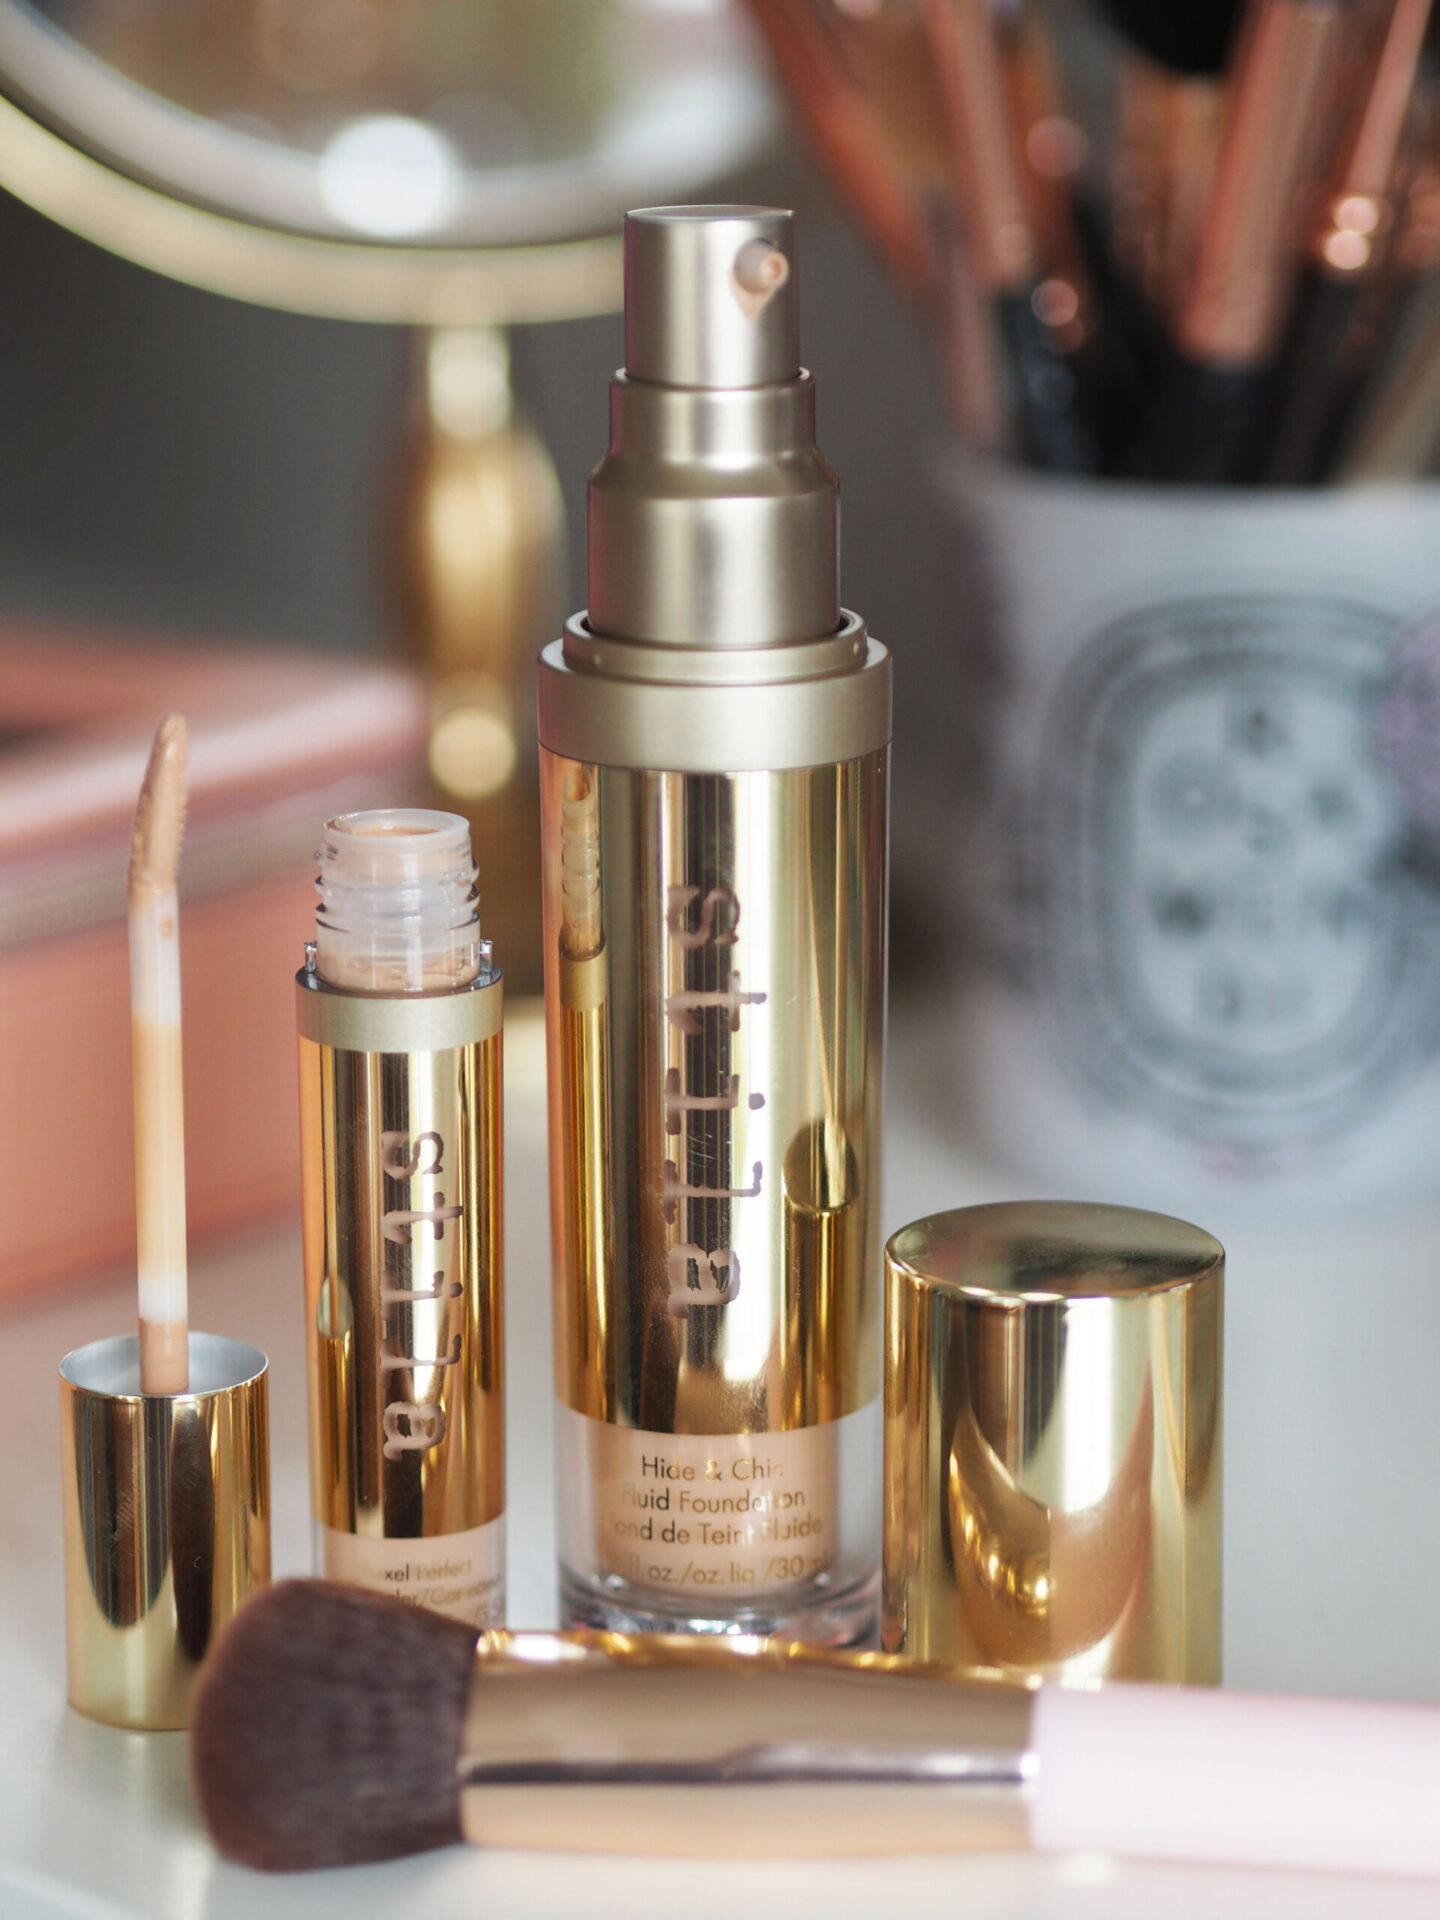 stila hide and chic fluid foundation review before after